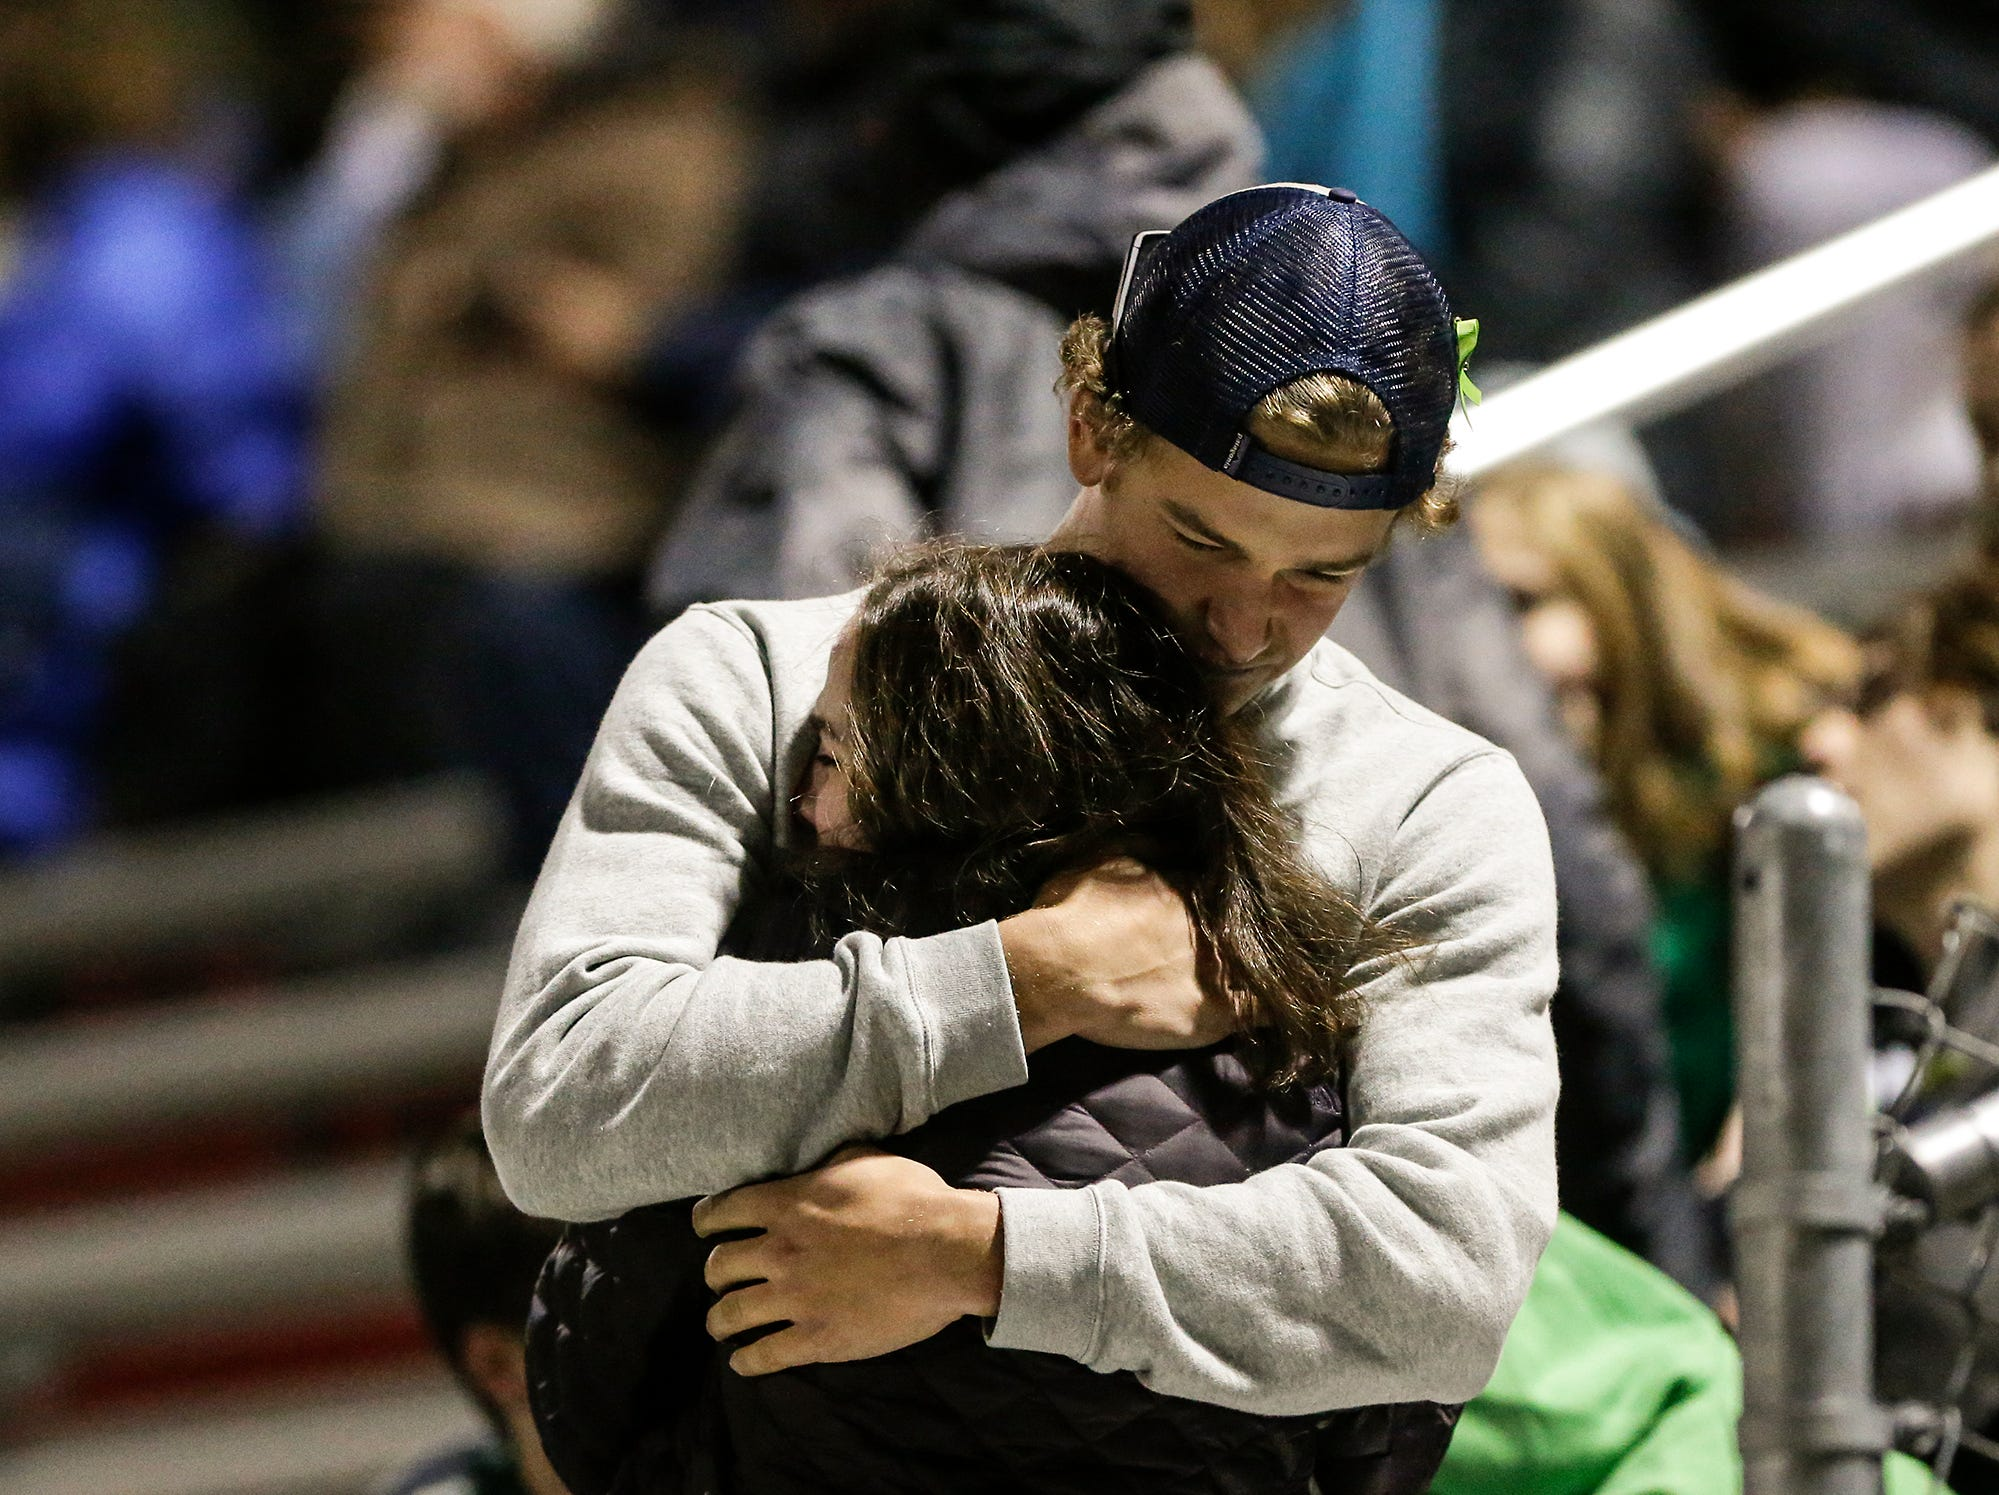 A grief-stricken mood was in place for St. Mary's Springs football's level one playoff game against Dominican High School Friday, October 19, 2018 in Lomira, Wisconsin as Springs fans and players mourned the death of Trent Schueffner. The varsity player was killed in a hunting accident earlier in the day. Springs went on to win the game 62-13. Doug Raflik/USA TODAY NETWORK-Wisconsin